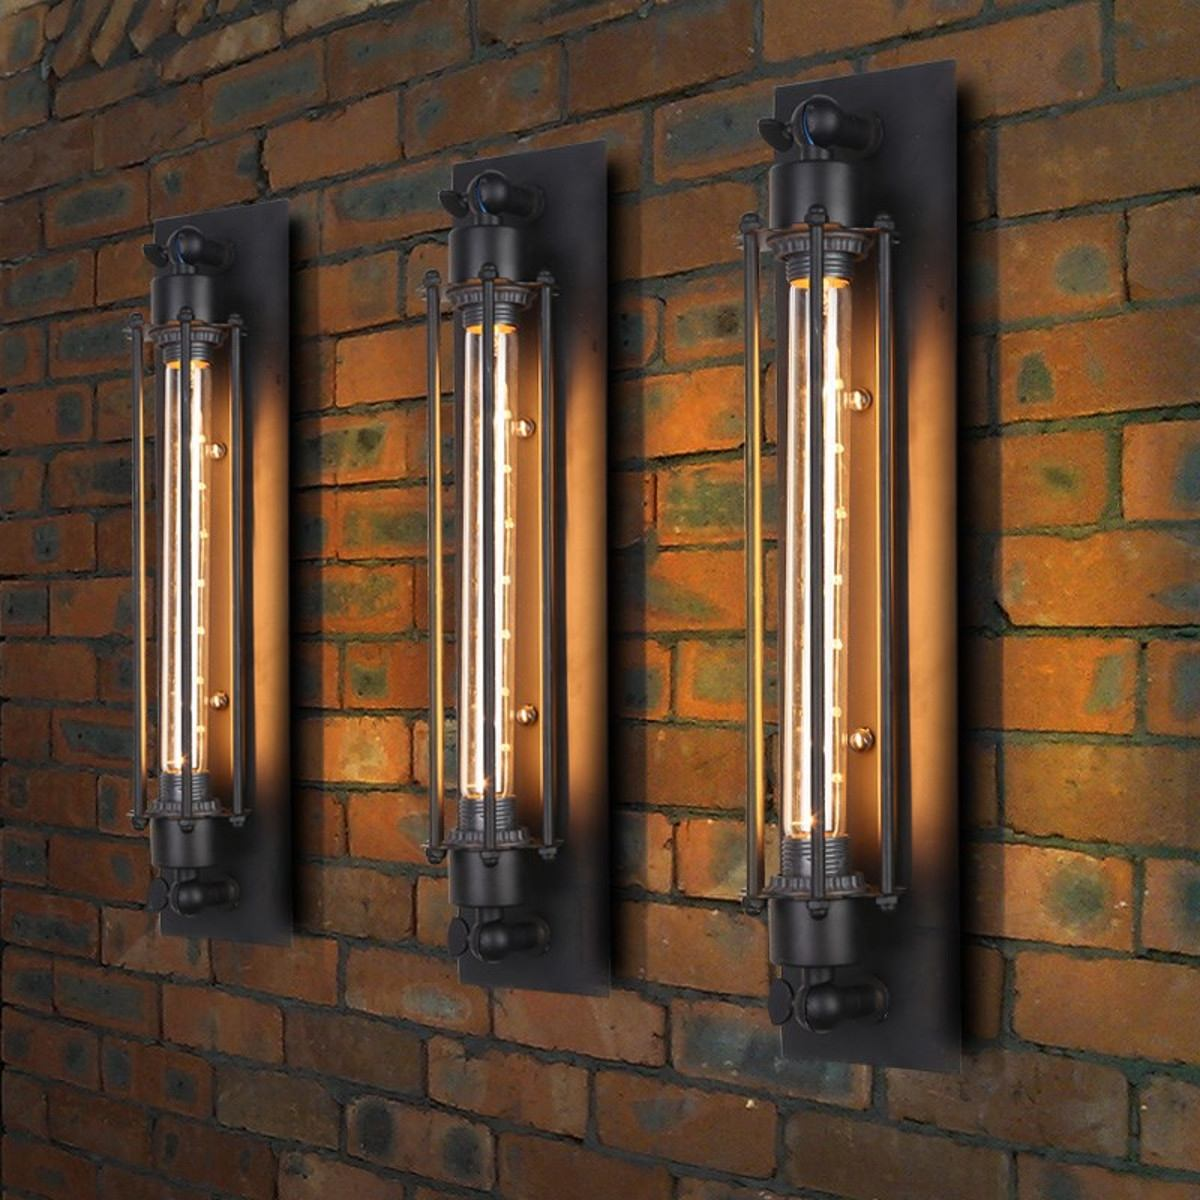 220V Retro Industrial Wall Light With Bulb Edison Light Bedside Wall Lamp Home Decoration Lamp Loft Vintage Wall Lamp 2019 New220V Retro Industrial Wall Light With Bulb Edison Light Bedside Wall Lamp Home Decoration Lamp Loft Vintage Wall Lamp 2019 New